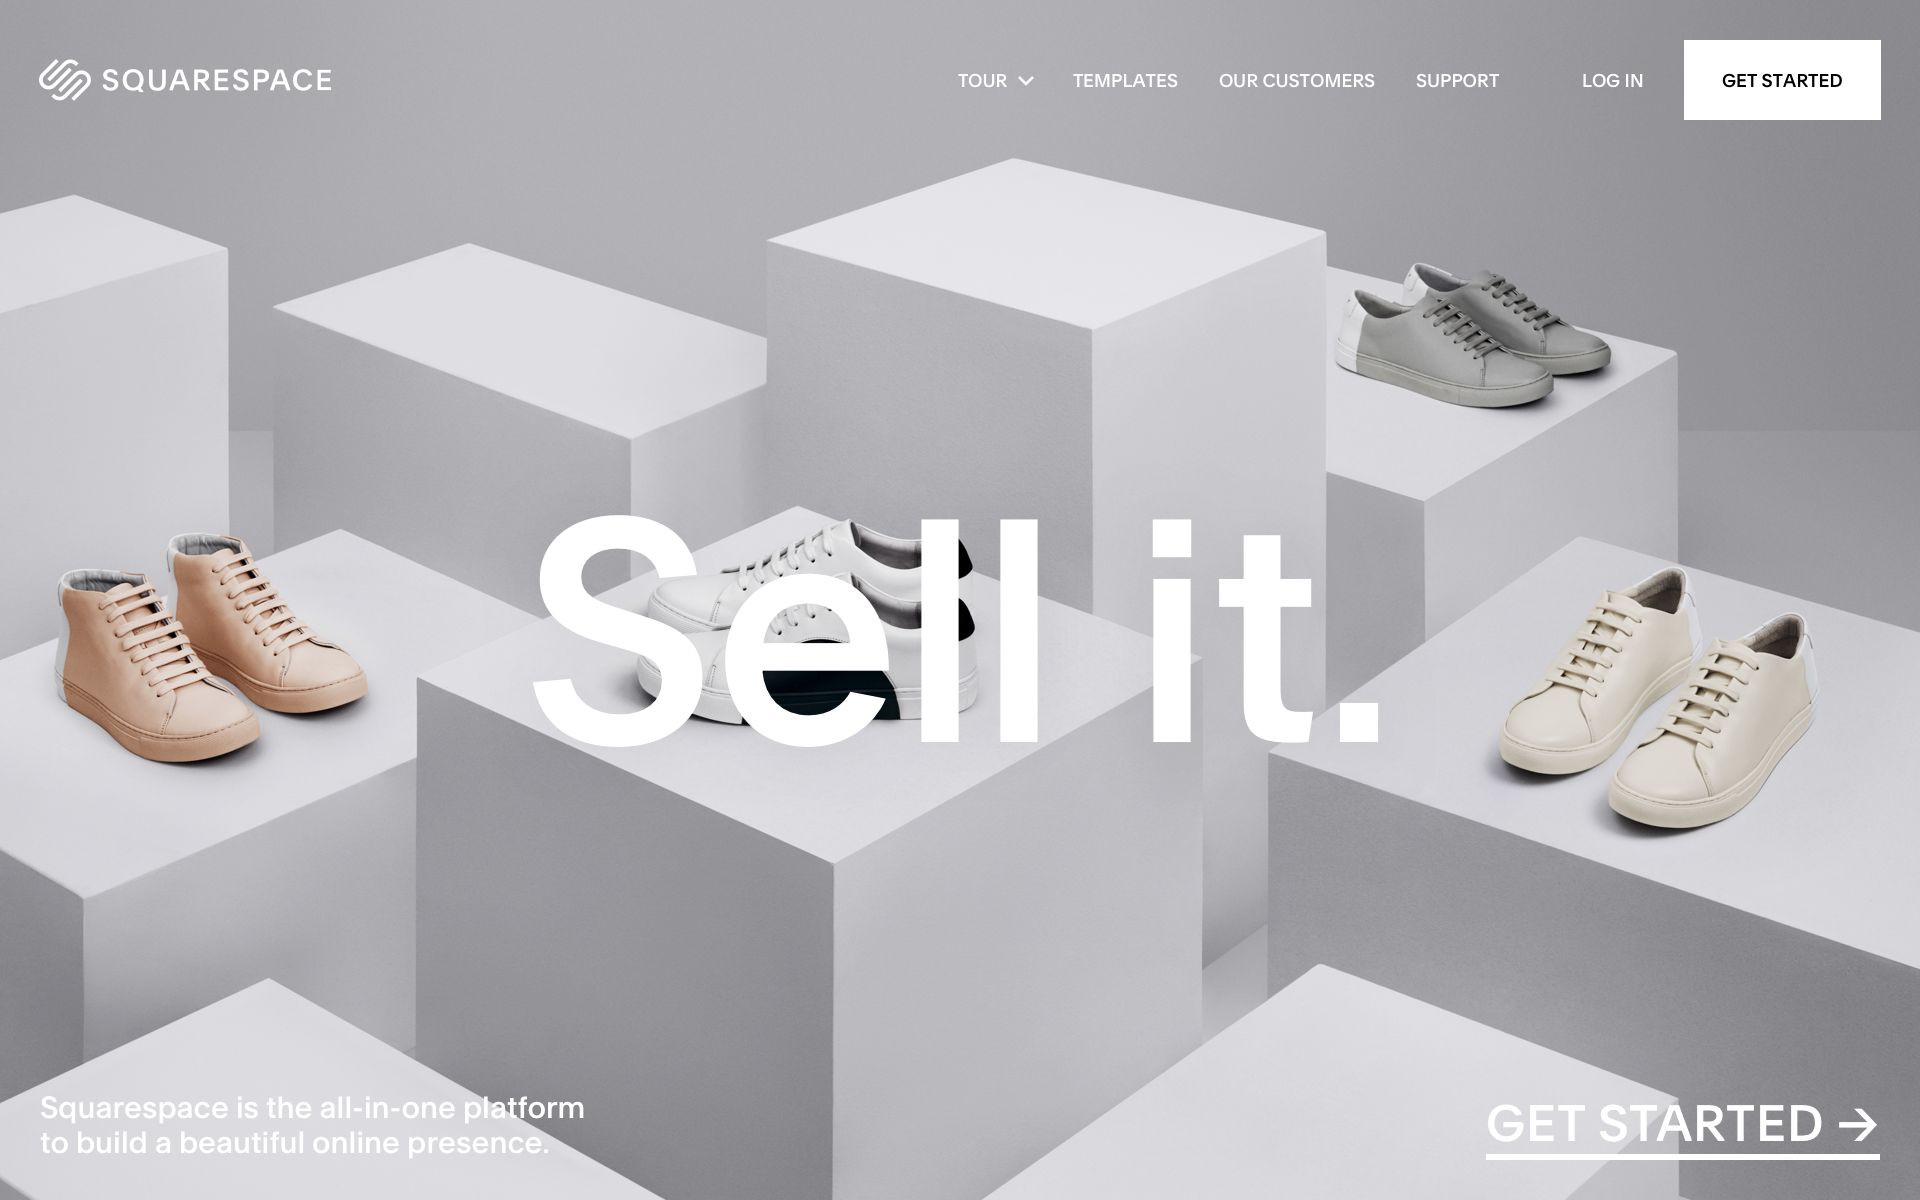 As part of Squarespace brand refresh, I helped redesigning the squarespace.com to match the new brand and typography. Visit Squarespace.